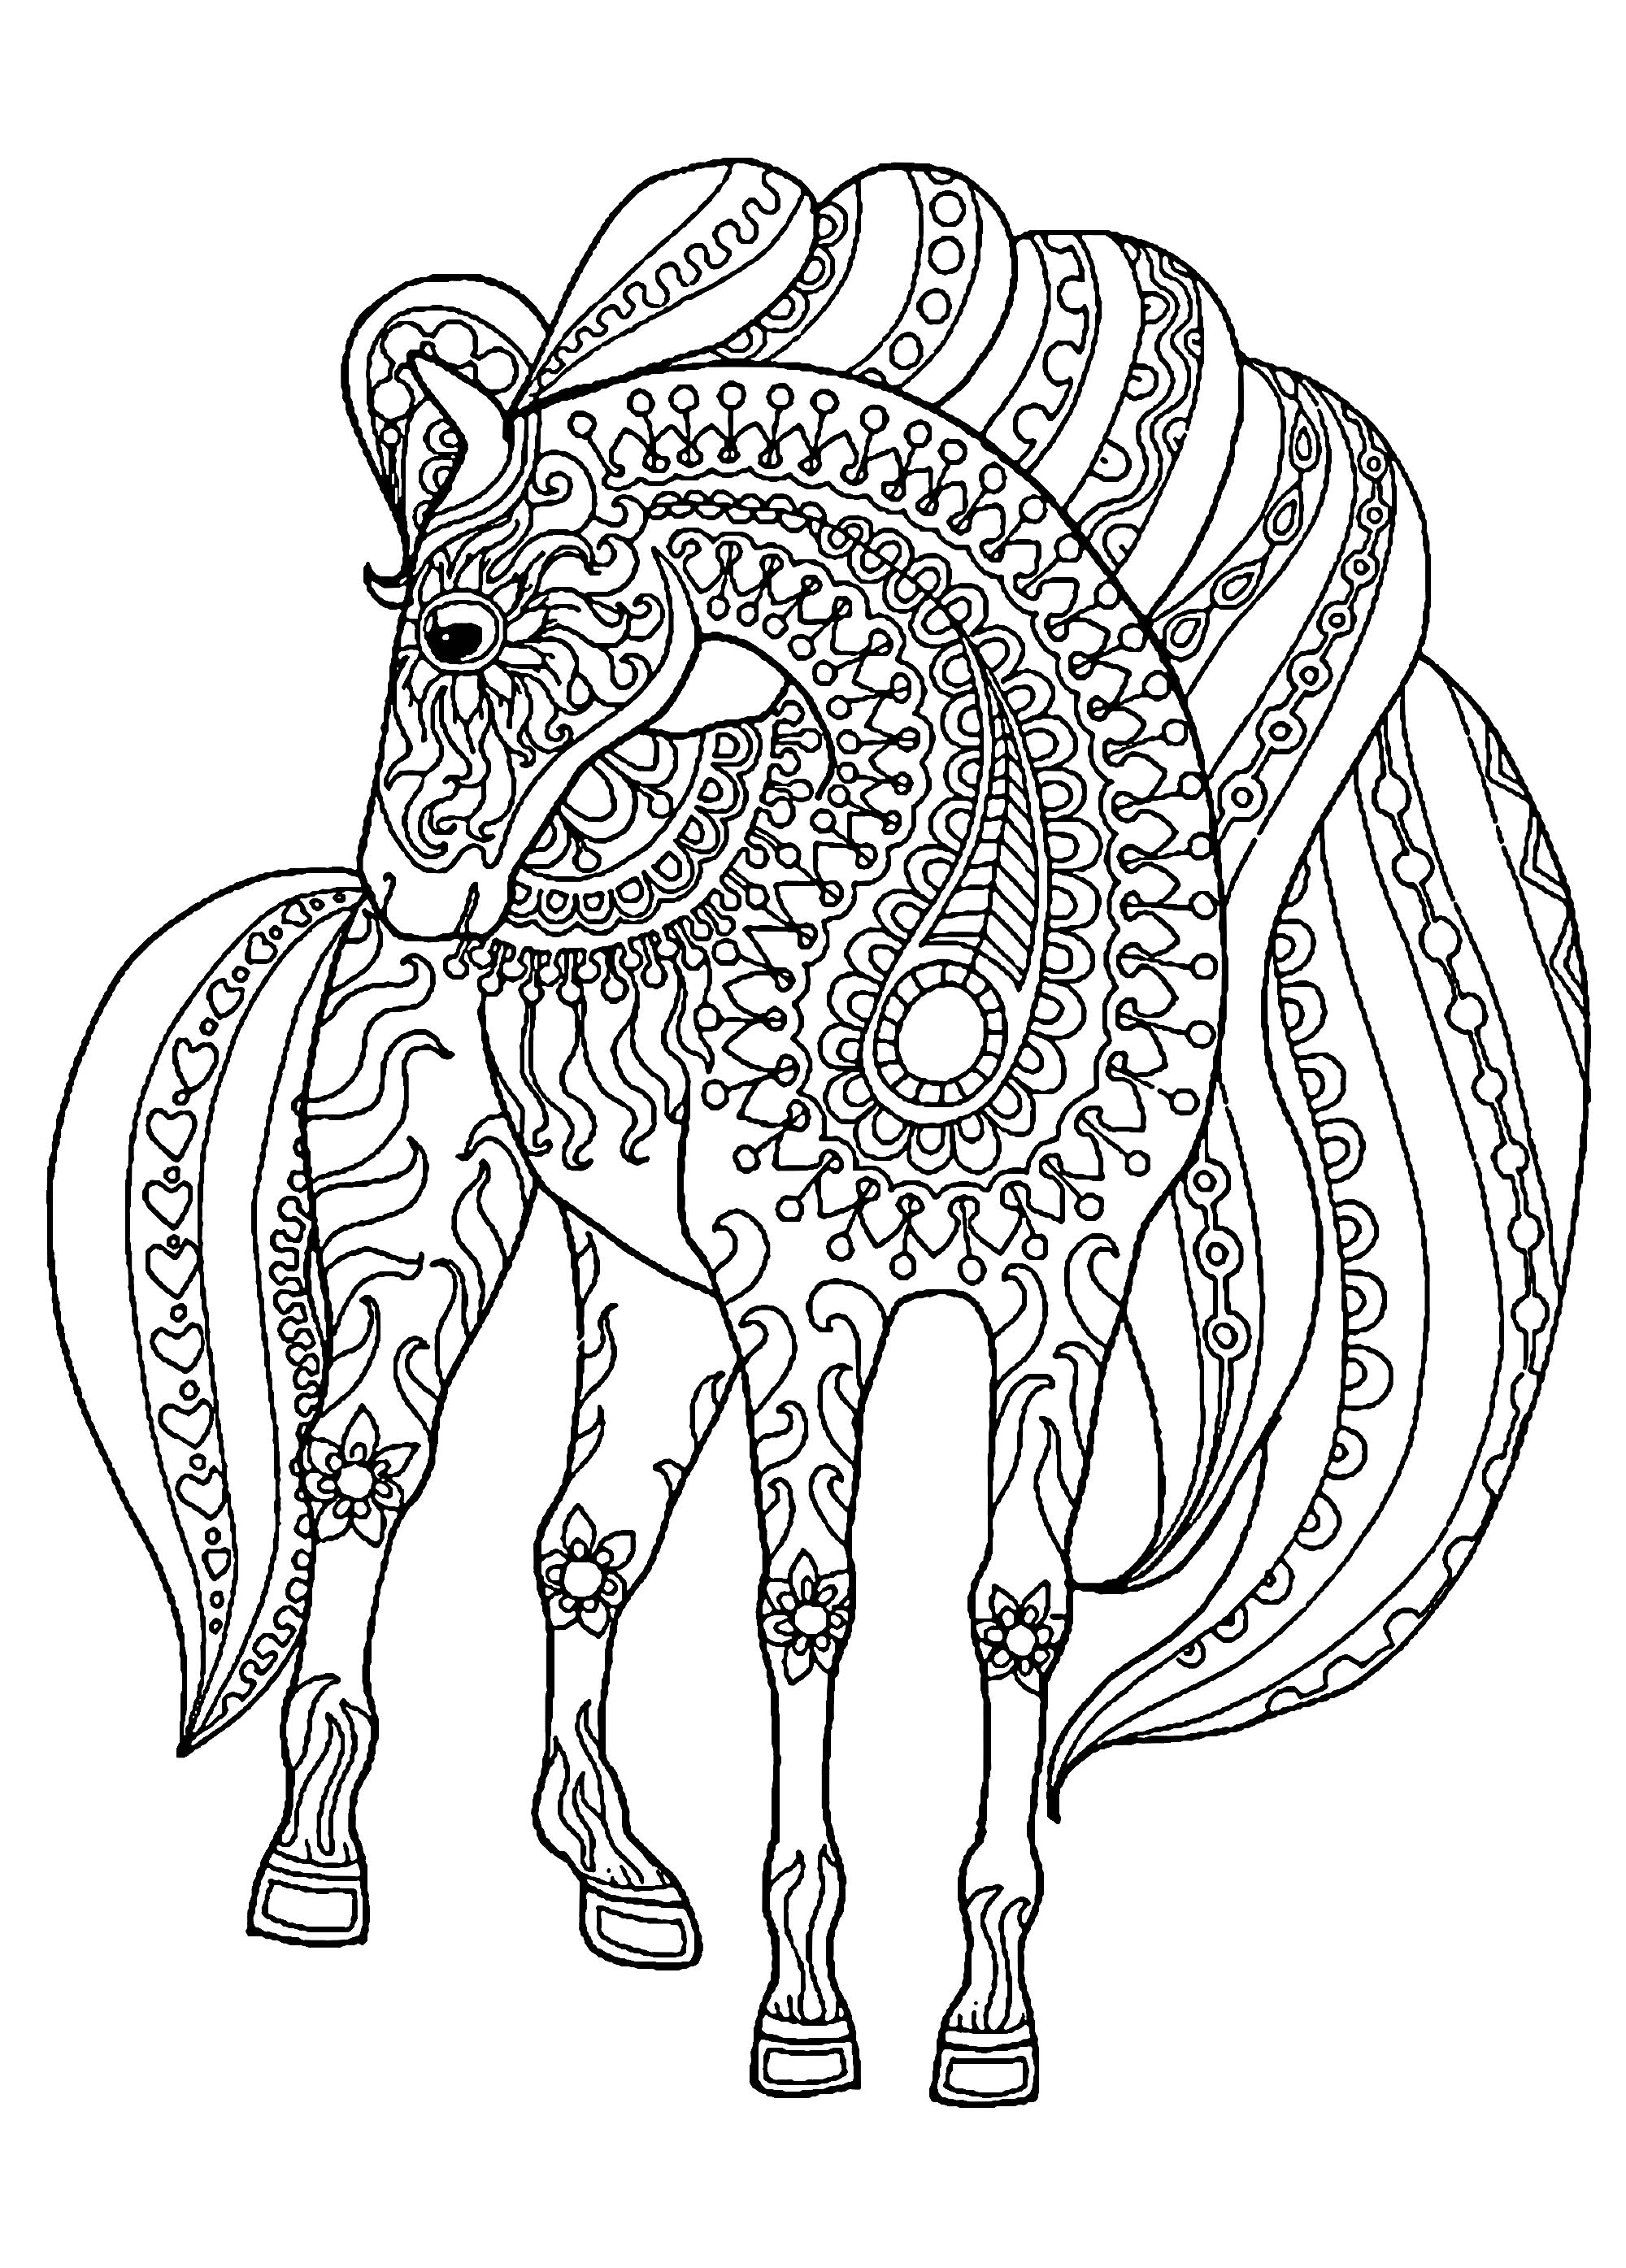 Horse With Patterns Free To Color For Children Horses Kids Coloring Pages